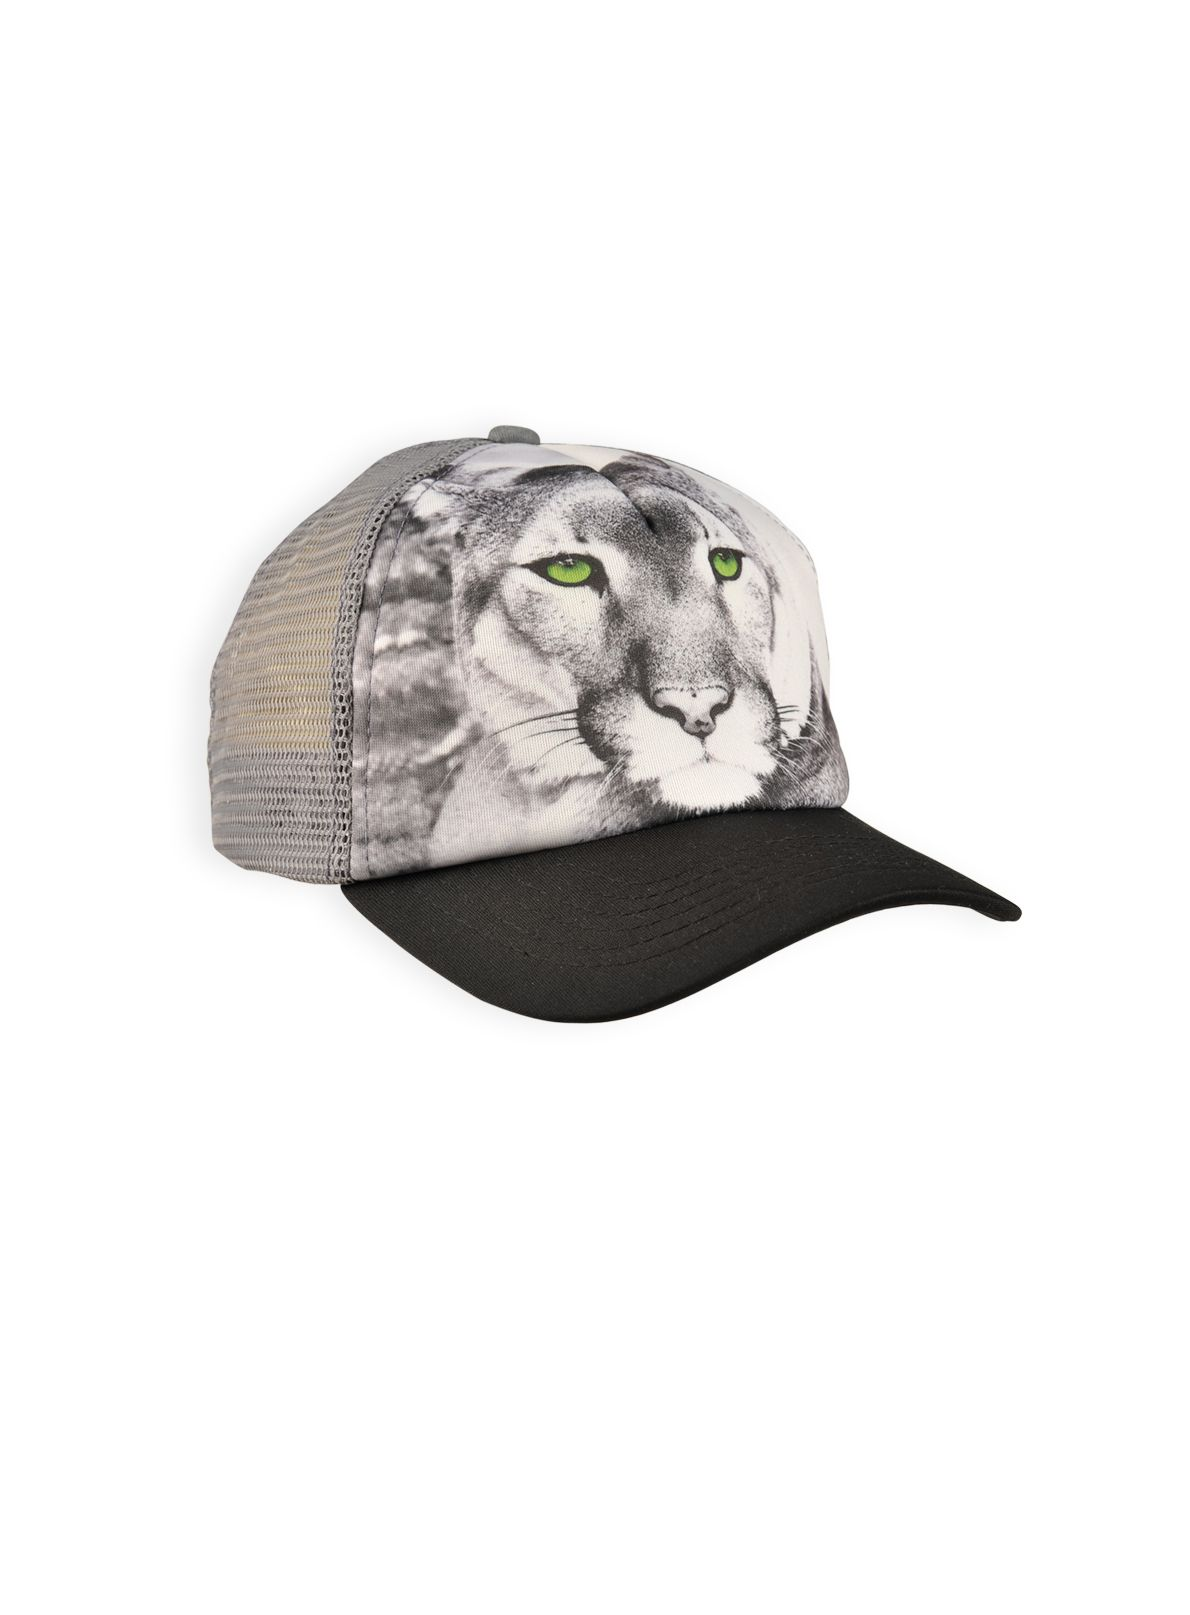 Boys jungle cat printed trucker hat